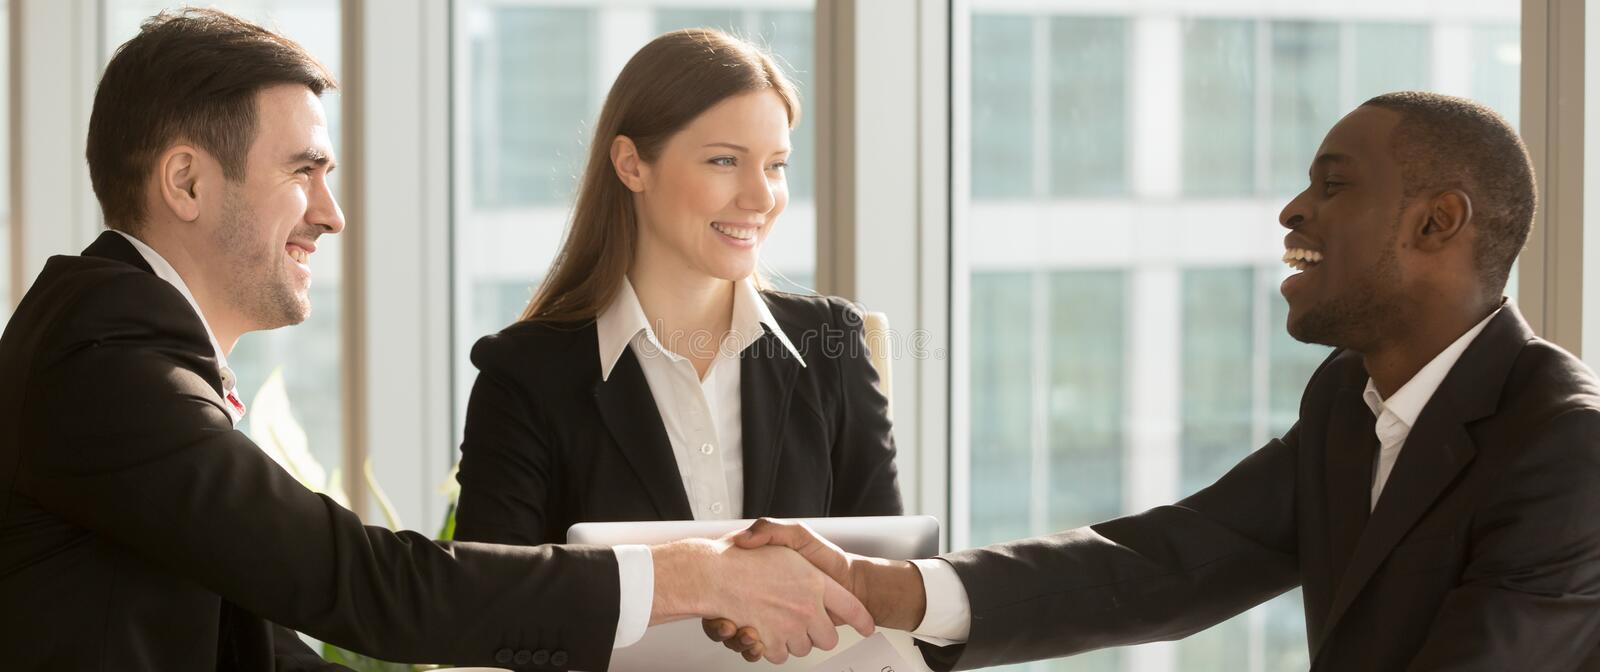 Horizontal image black and caucasian businesspeople greeting each other handshaking stock images